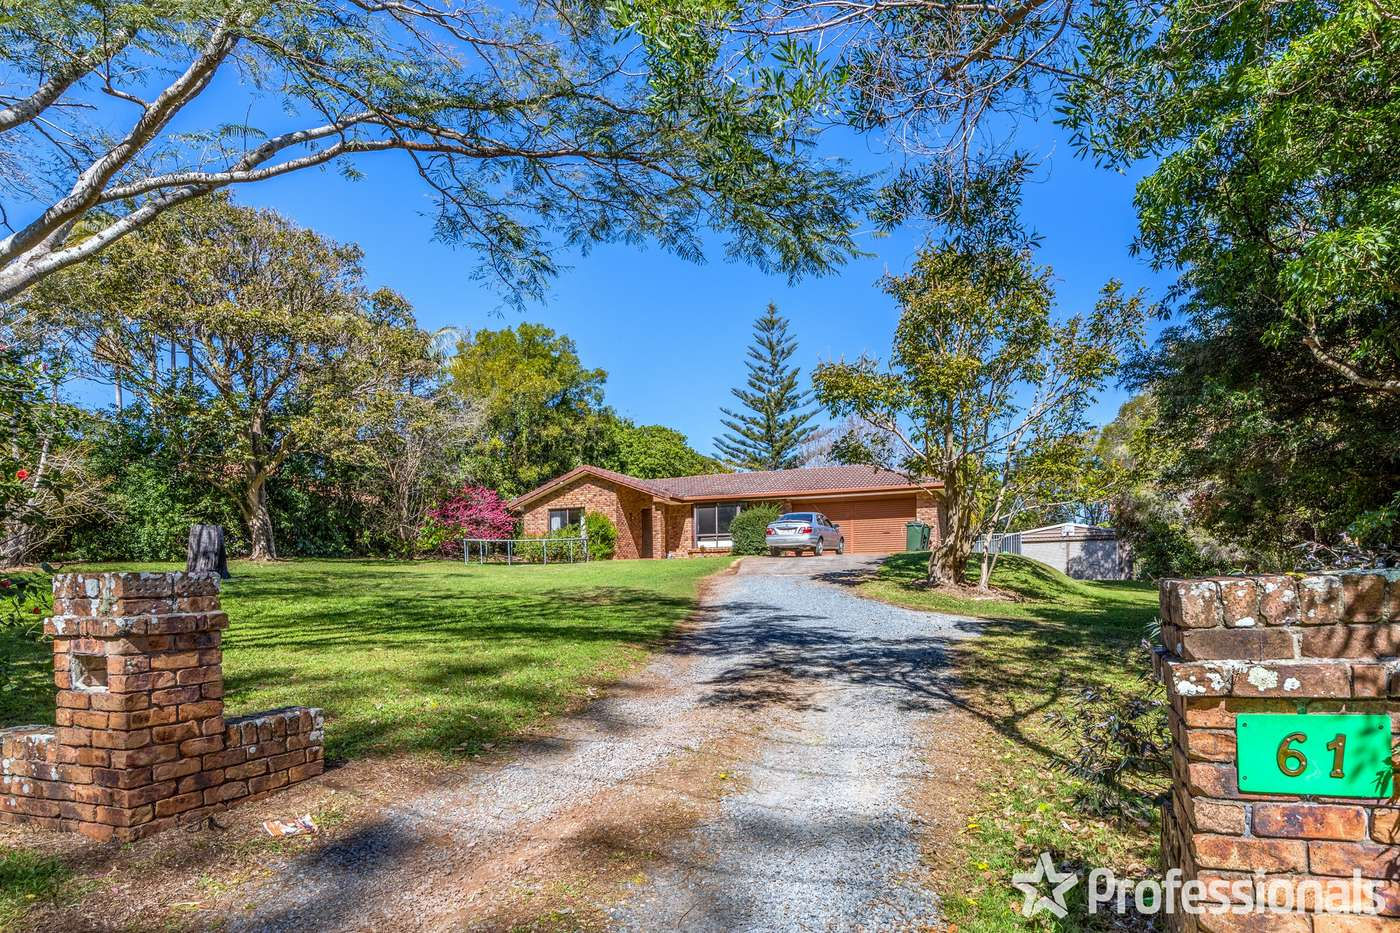 Main view of Homely house listing, 61 Freemont Drive, Tamborine Mountain, QLD 4272